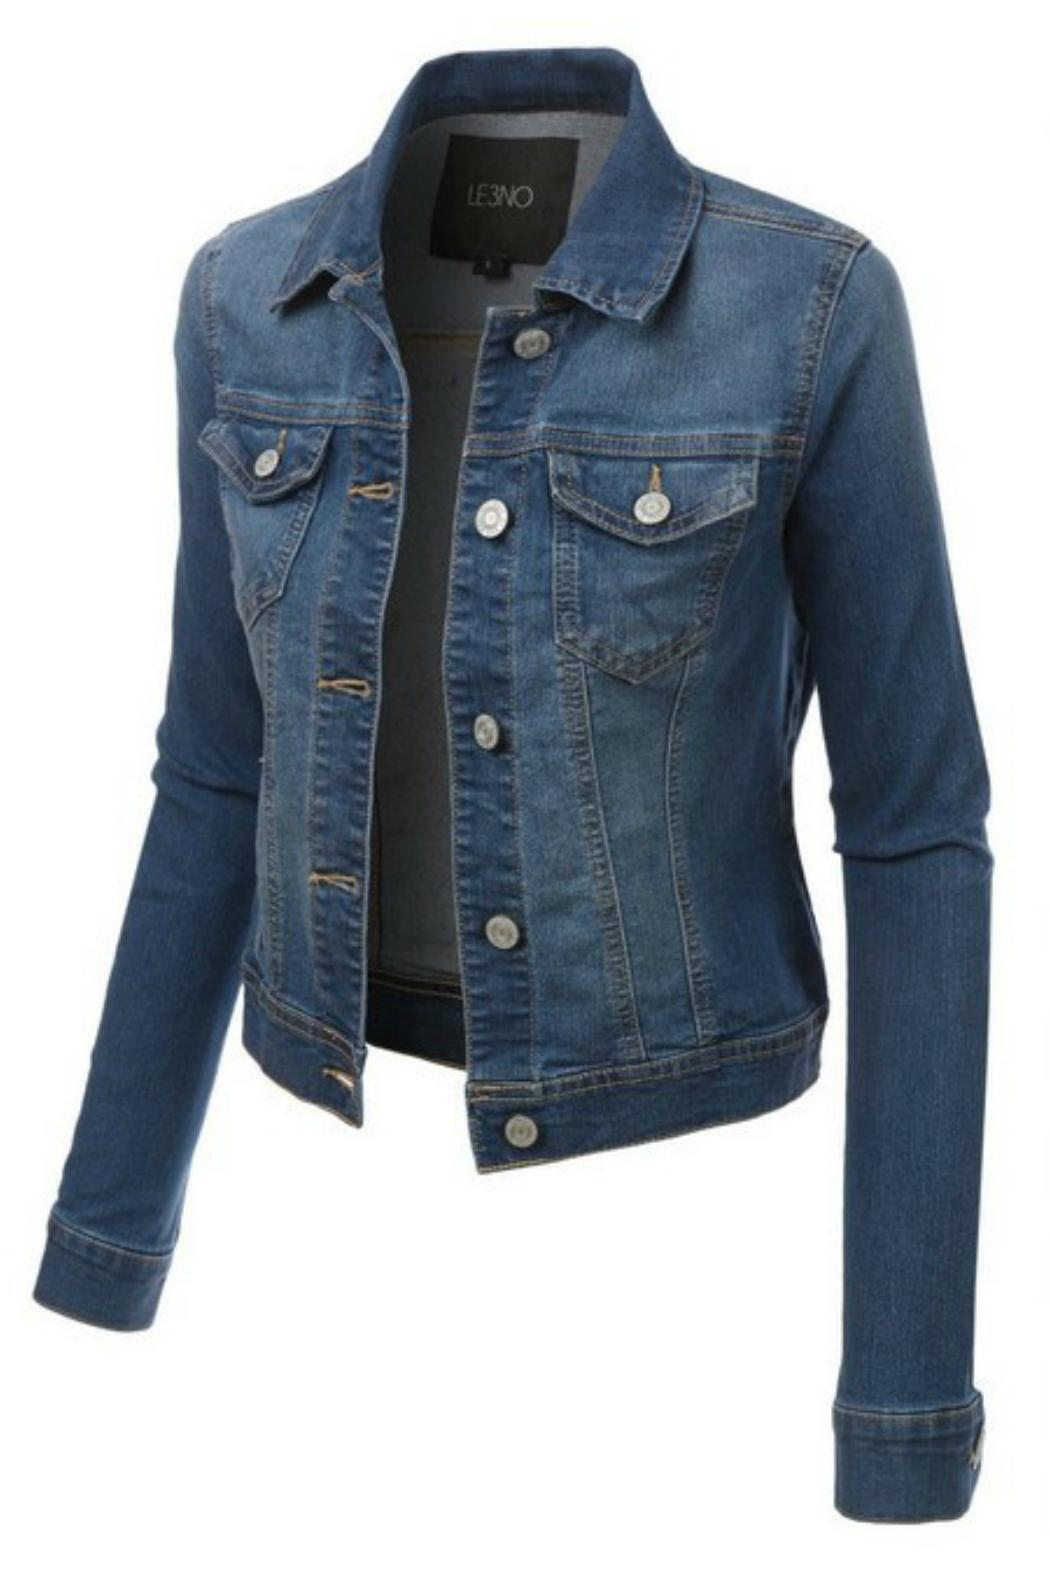 Step-up your style with JCPenney's variety of women's denim jackets! The classic jean jacket has been a wardrobe staple for decades, and you're going to want to have a few of them. Shop online now to find one in a dark wash, light wash, or with embellishments to add extra style.